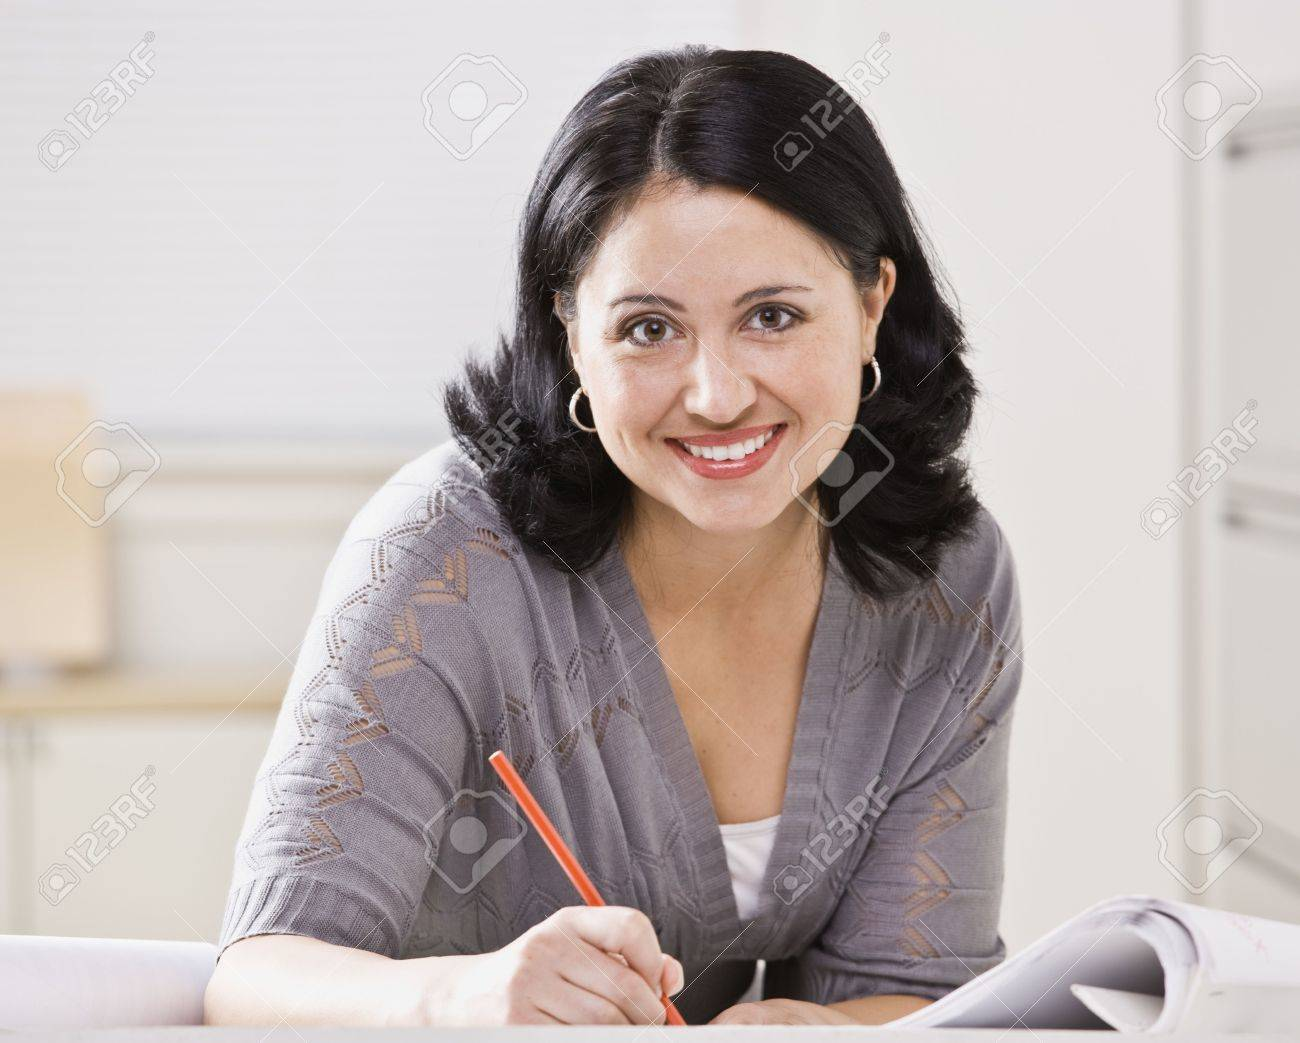 A beautiful Hispanic woman writing at a desk.  She is smiling at the camera.  Square compostion. Stock Photo - 5333704